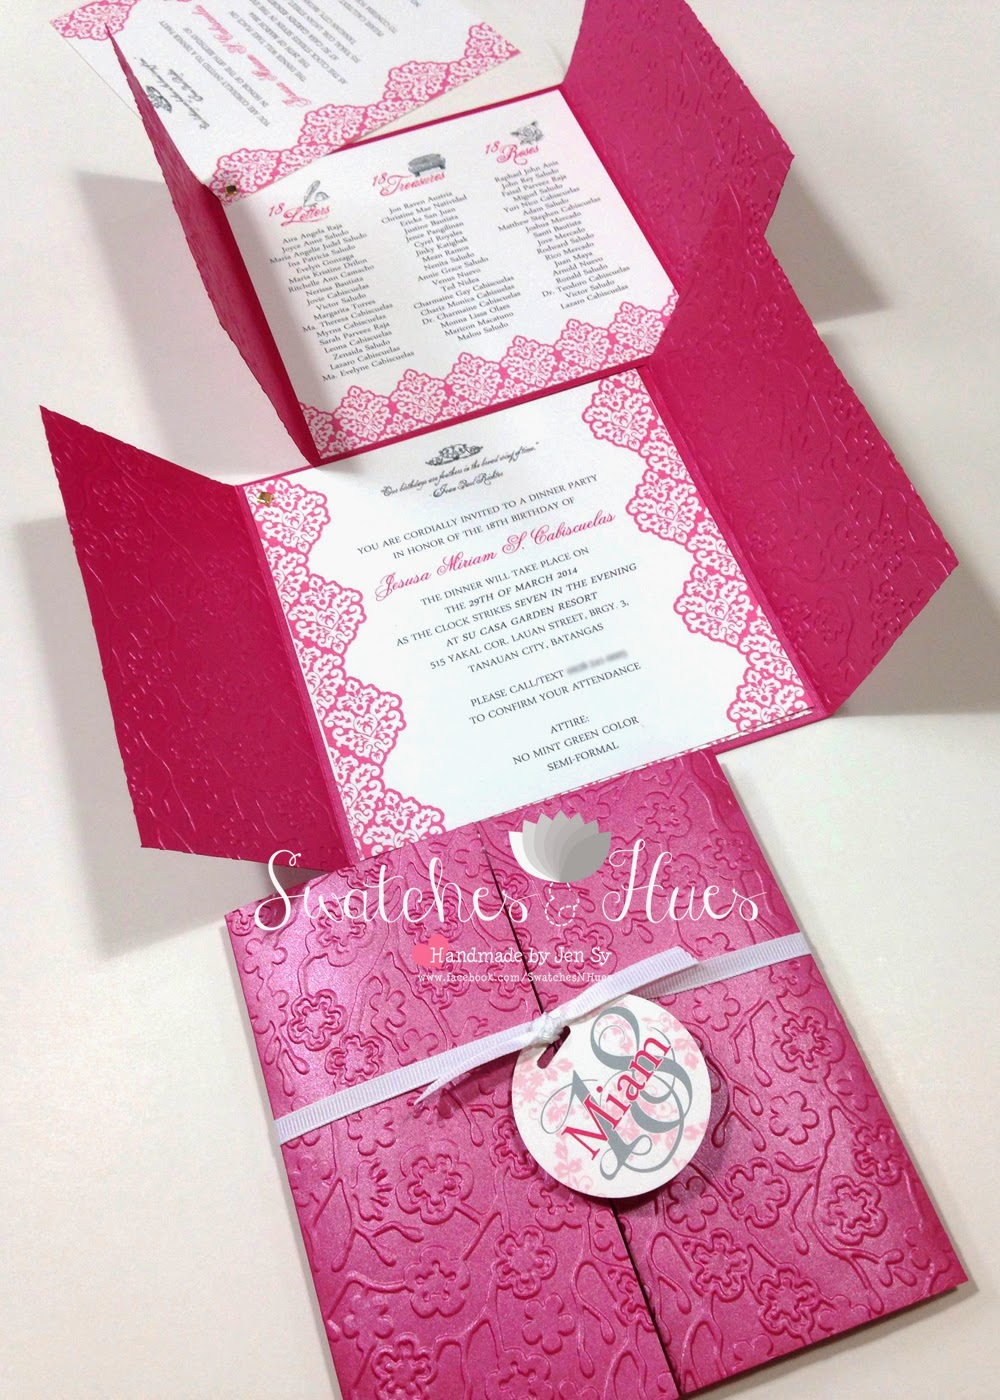 Swatches hues handmade with tlc princess theme gate fold debut here is a gate fold invitation for an 18th birthdaydebut party front panels were embossed for a classy look pages were held together with a gold brad stopboris Image collections